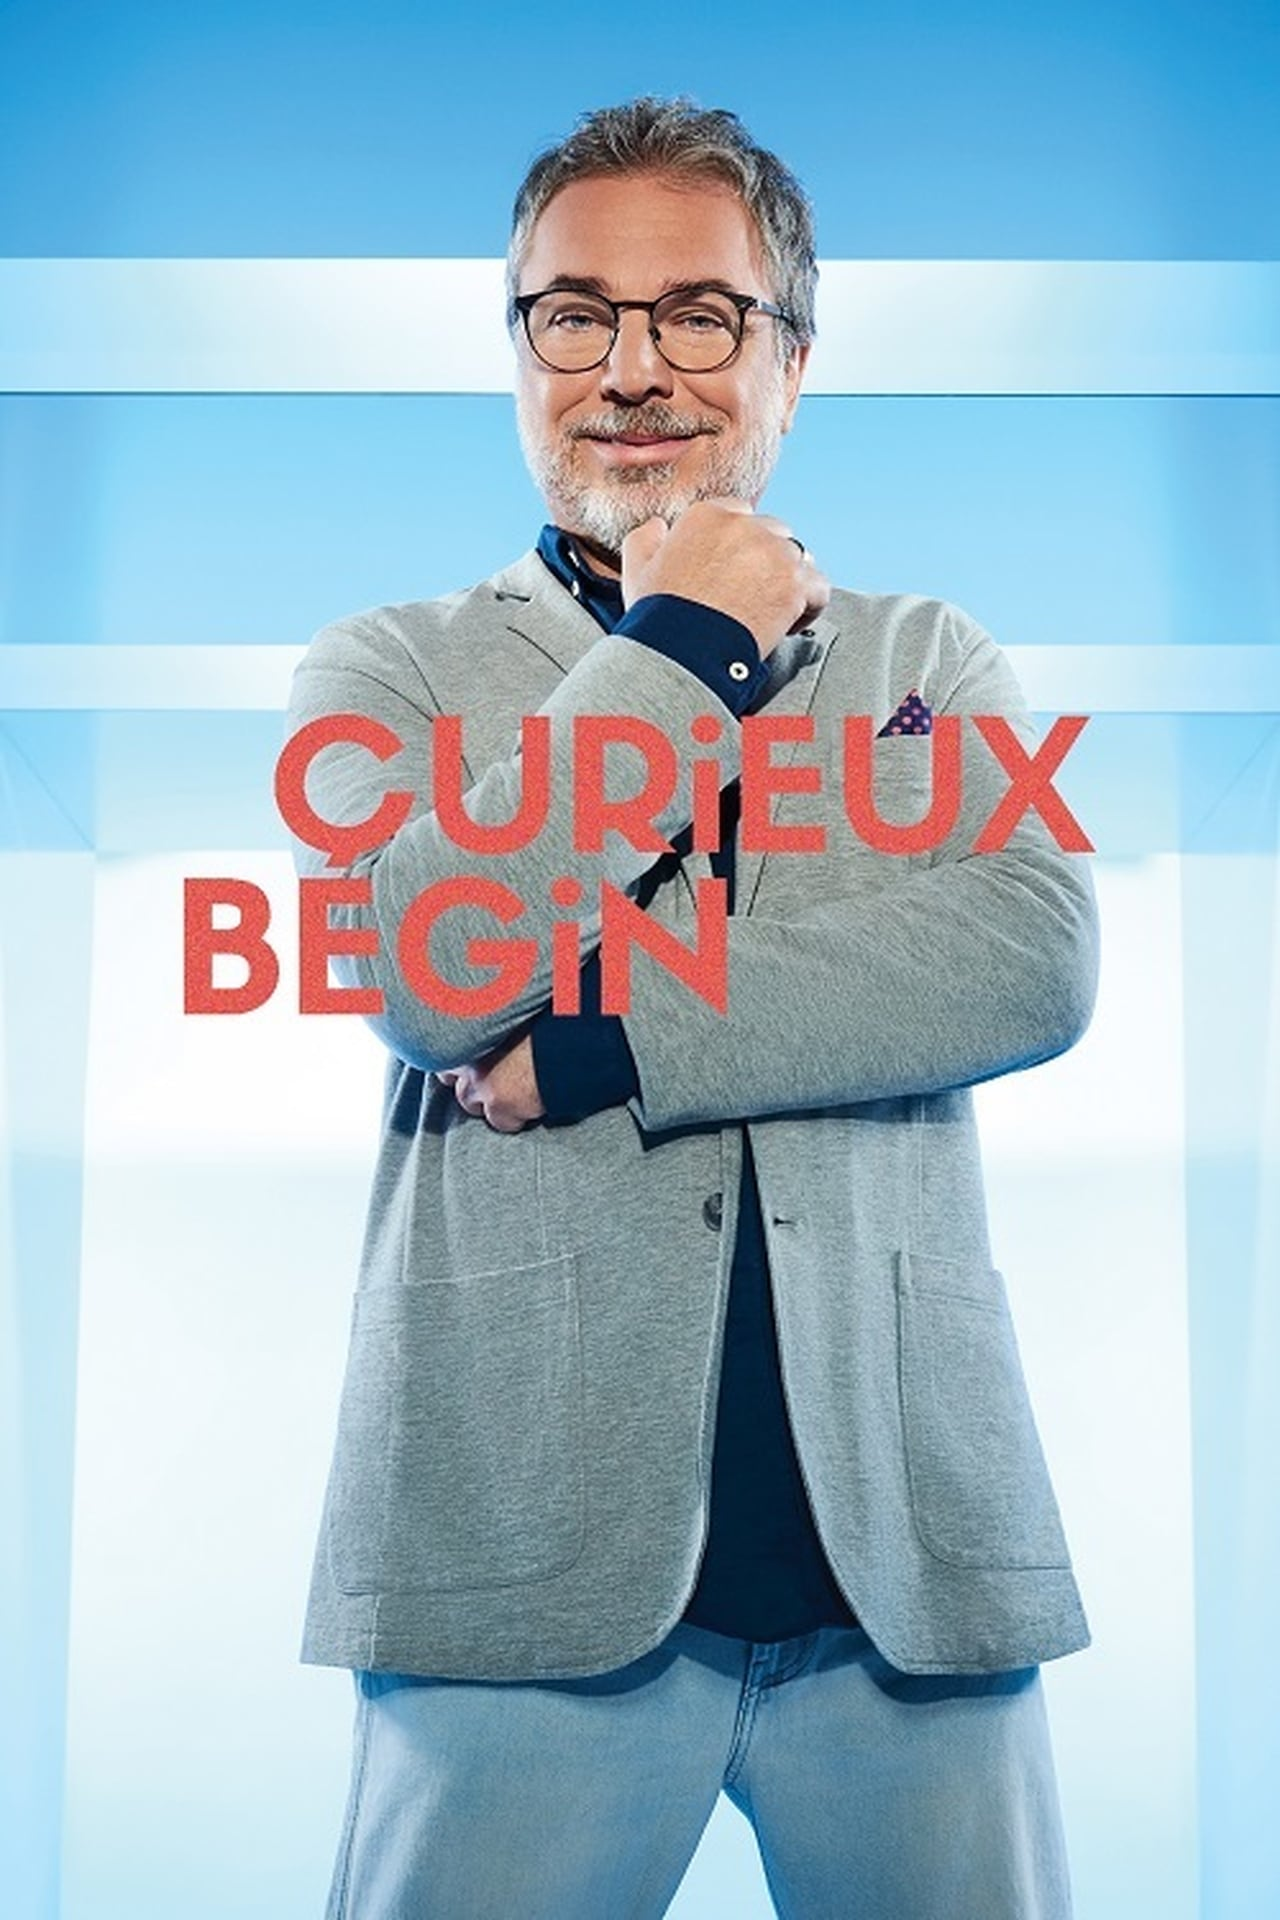 Putlocker Curieux Bégin Season 5 (2012)